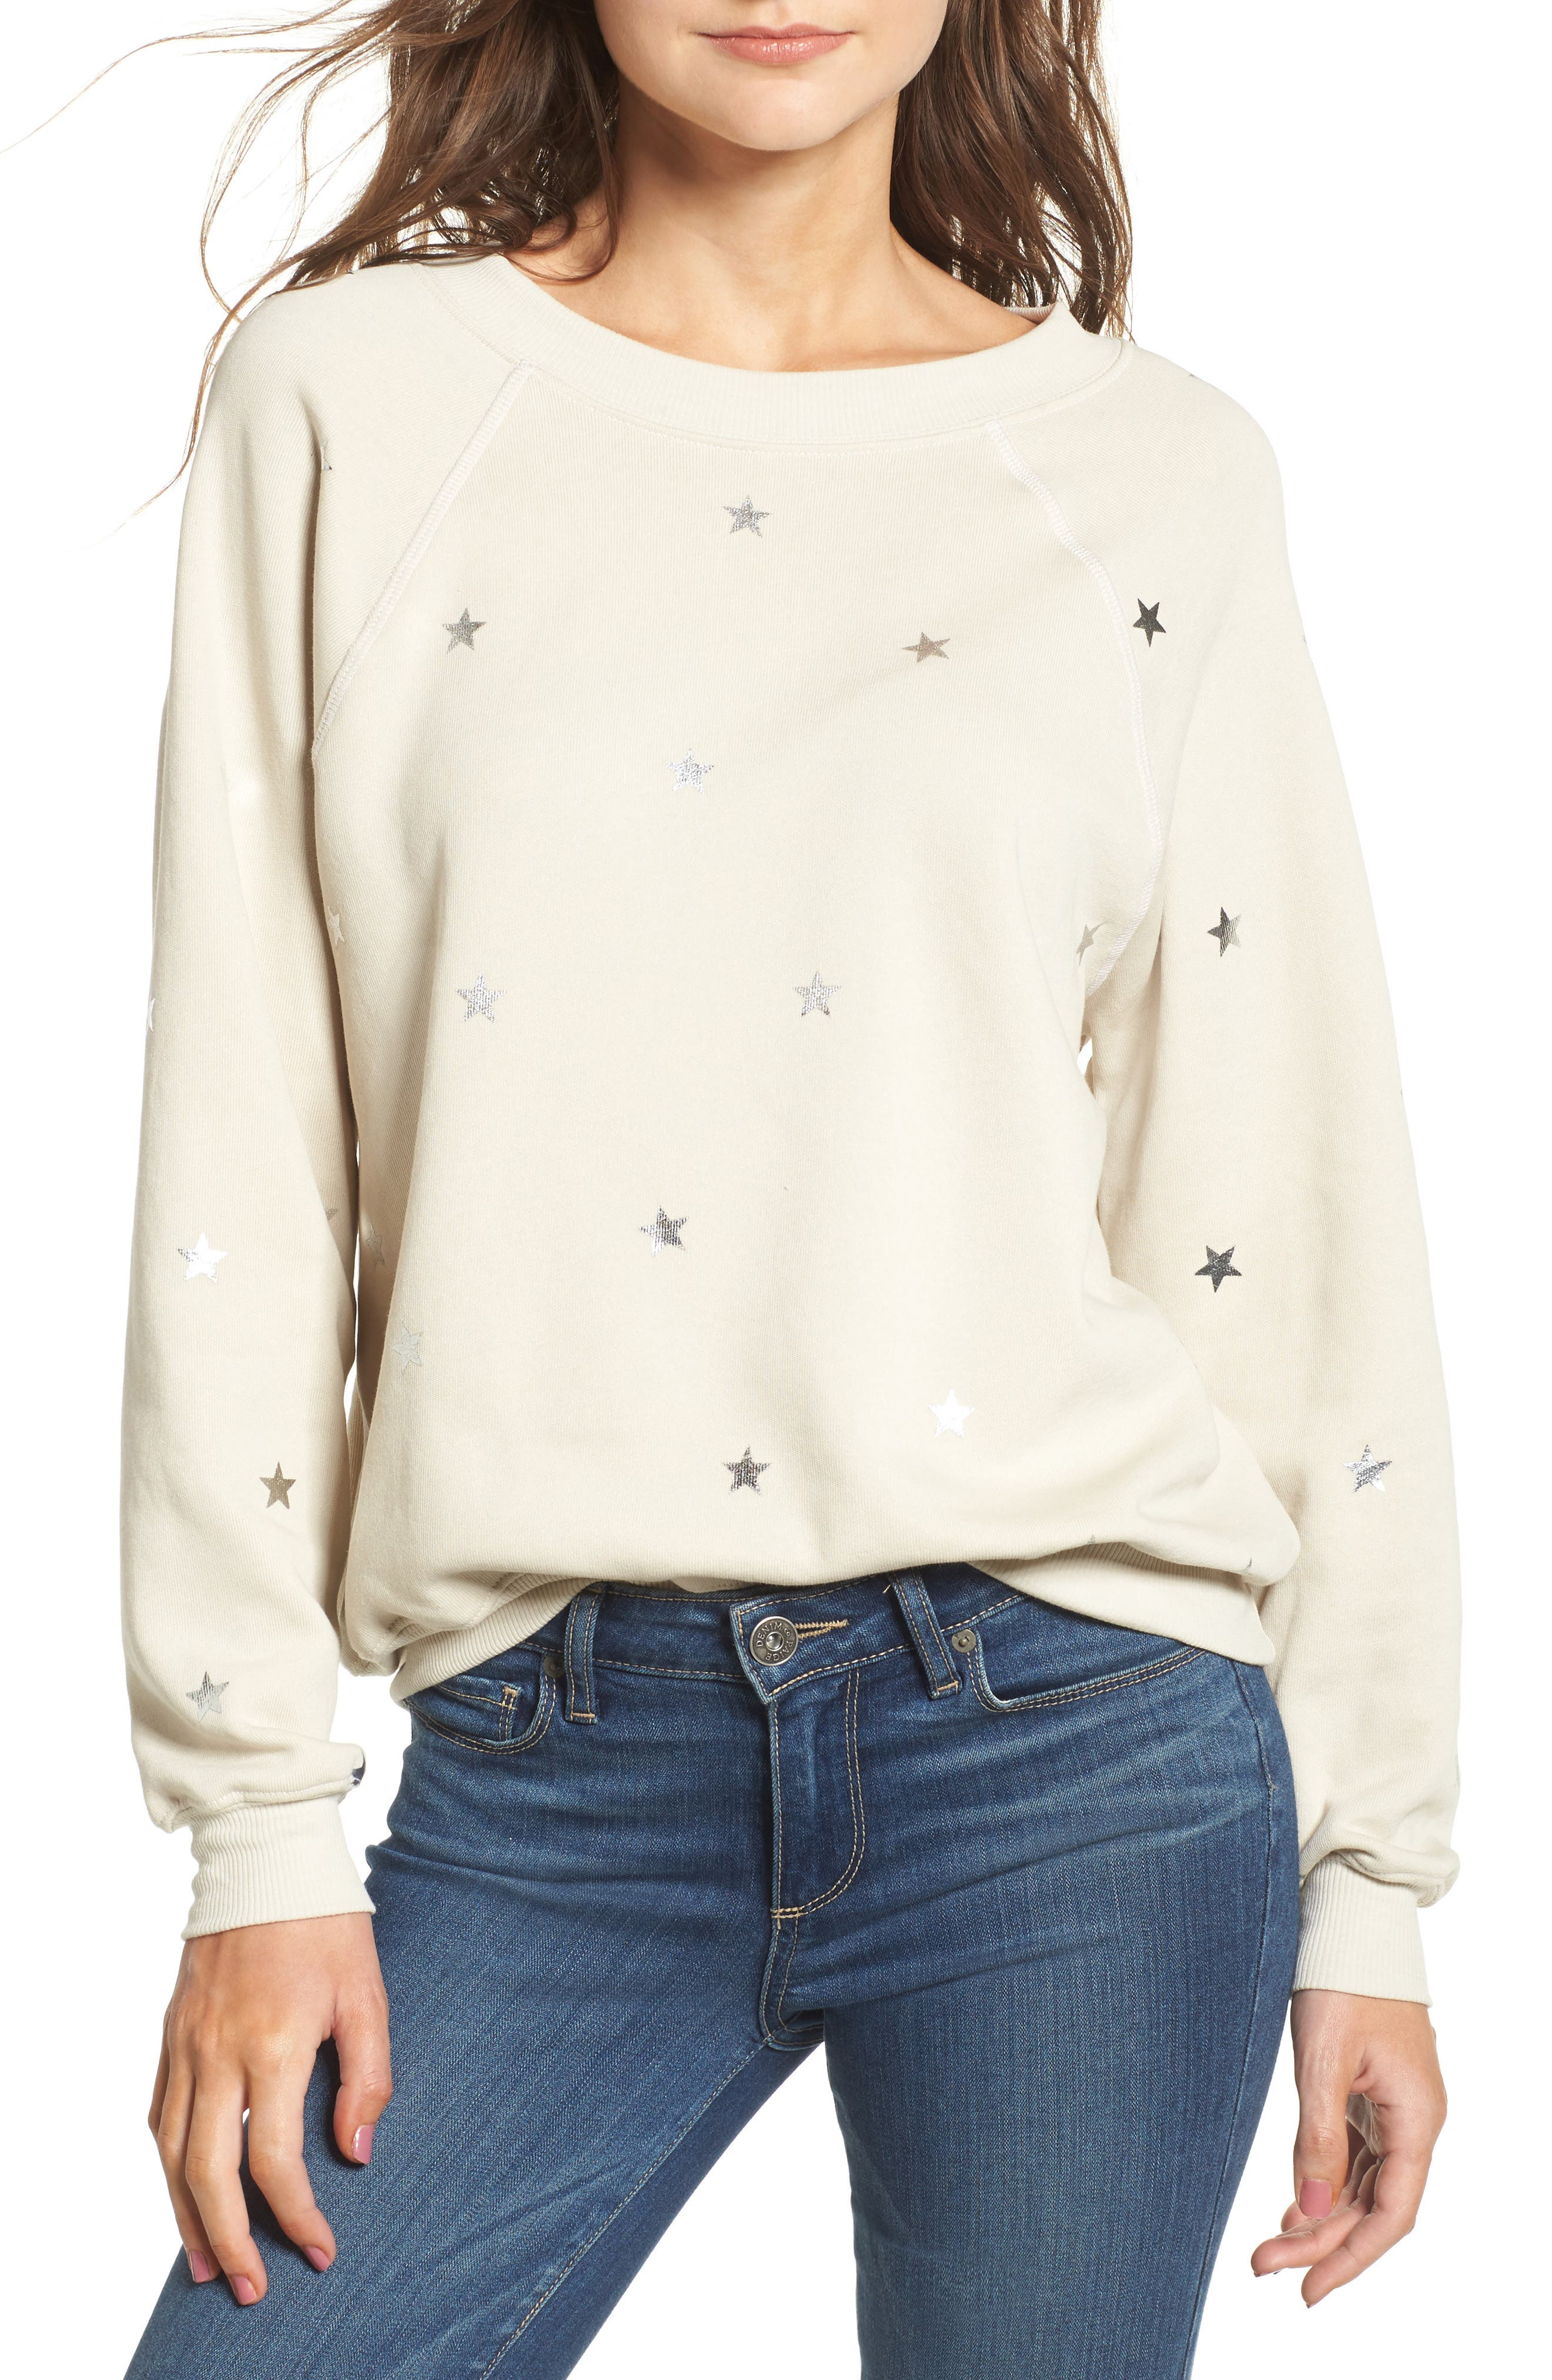 Wildfox Twinkle Star Sweatshirt